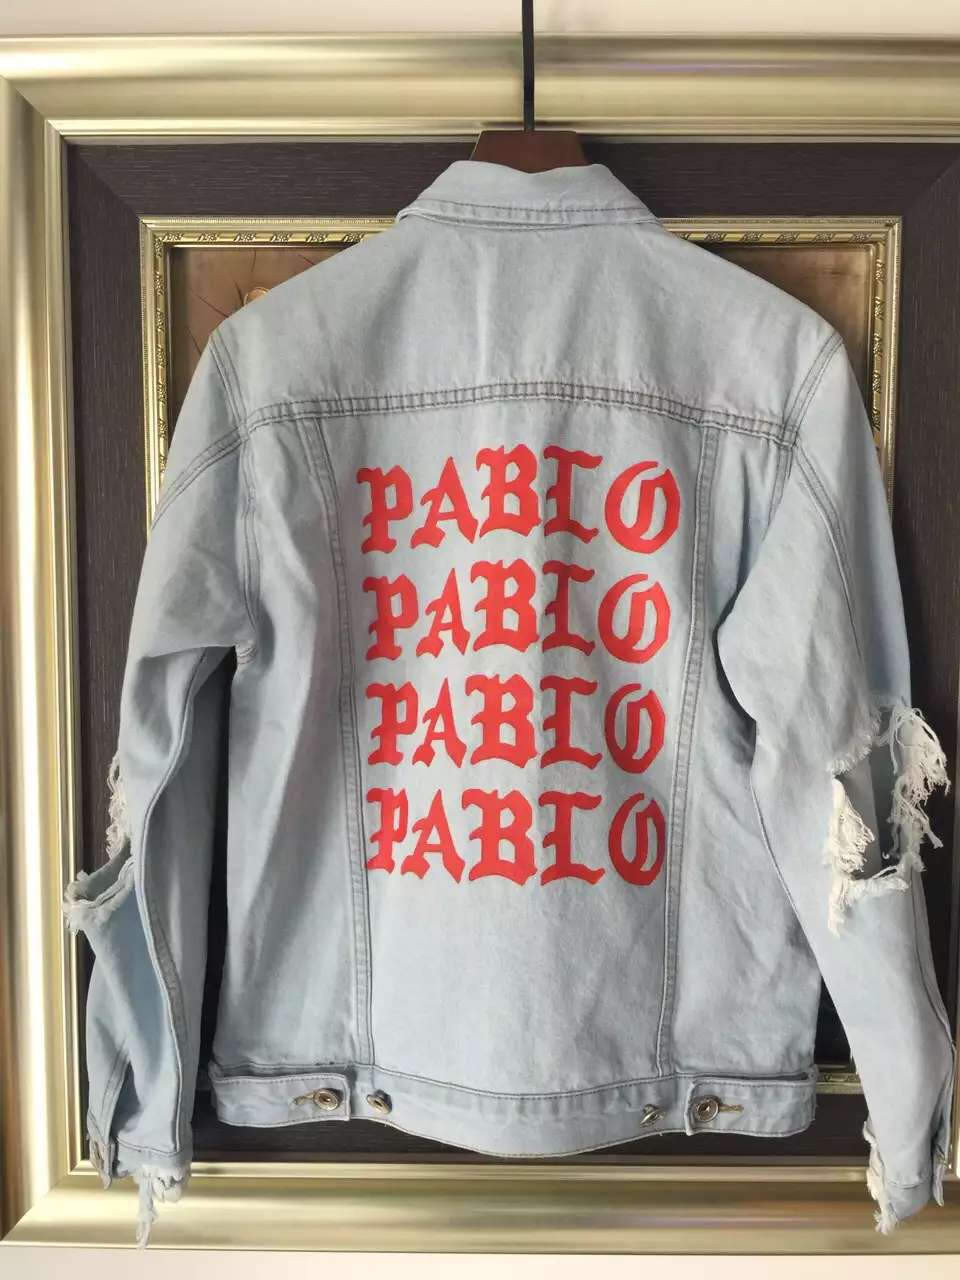 HTB1wdvmNXXXXXXSXpXXq6xXFXXX4 - I Feel Like Pablo Denim Jacket Season 3 Kanye West Pablo Jeans Jacket PTC 03